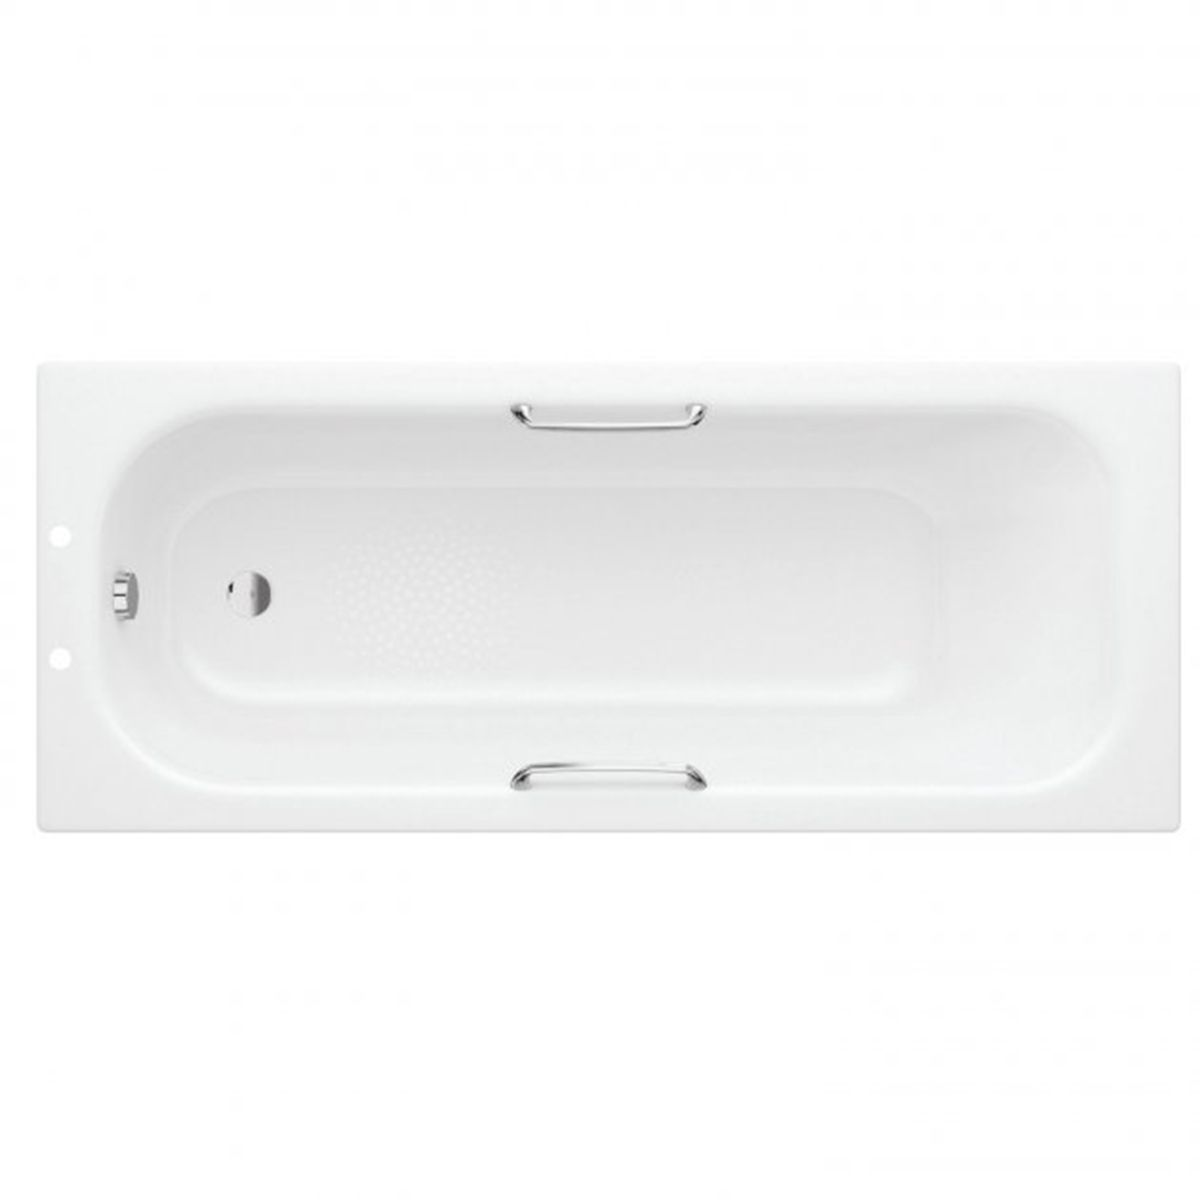 Bathrooms To Love Rectangular Single Ended Anti-Slip Steel Bath with Grip 1700mm x 700mm